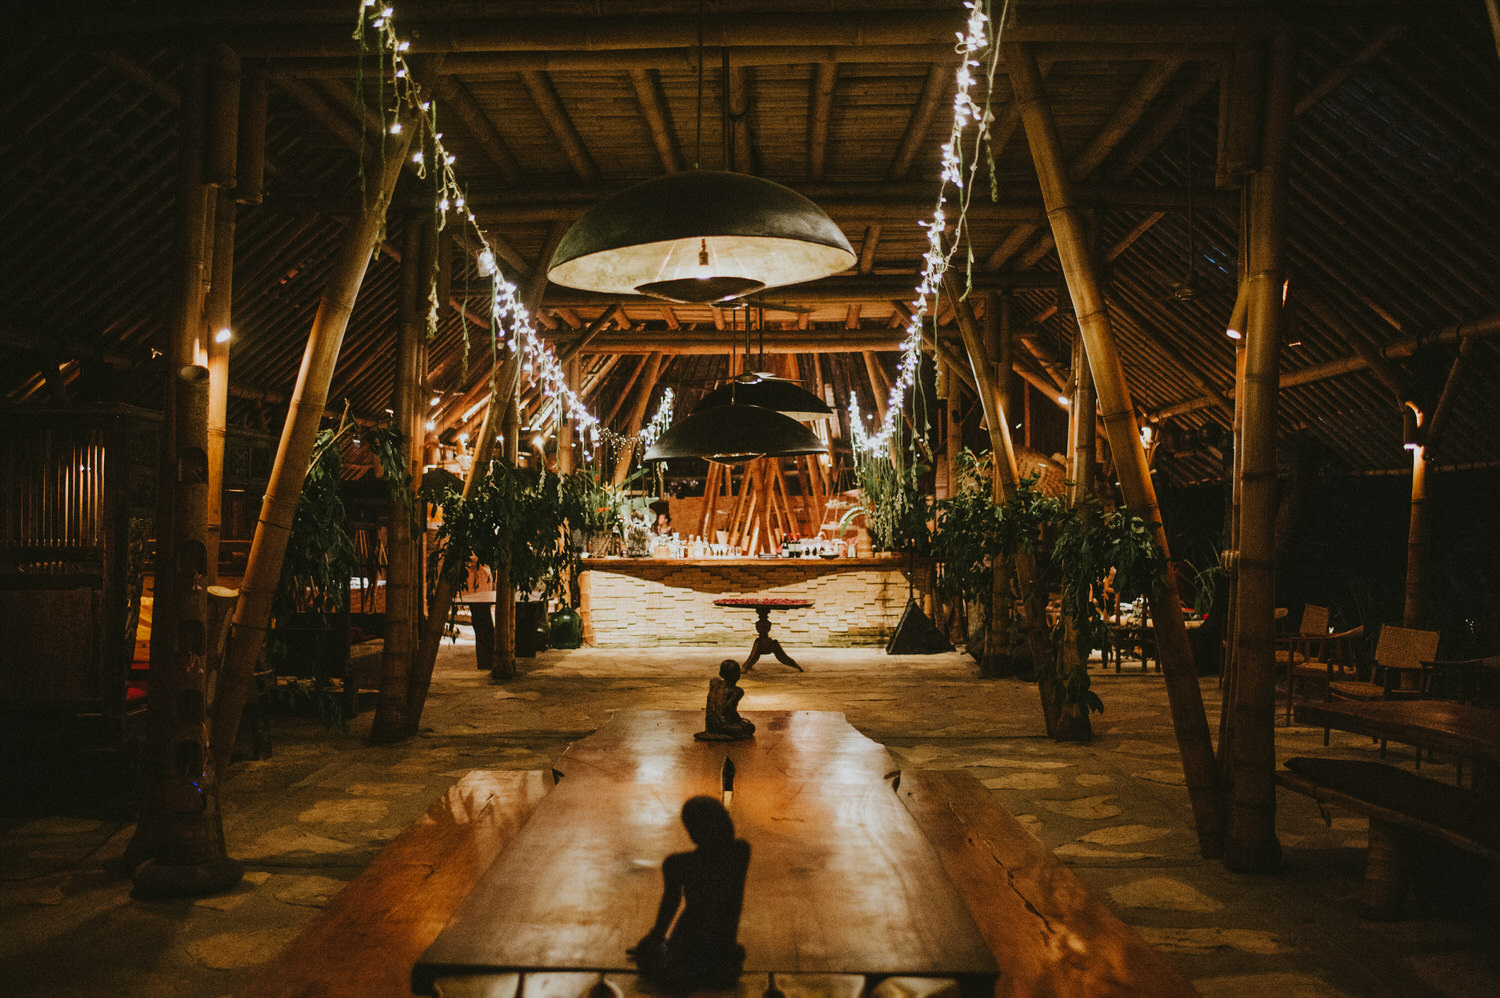 bali-wedding-ubud-wedding-wedding-destination-diktatphotography-kadek-artayasa-elaine-and-glenn-116